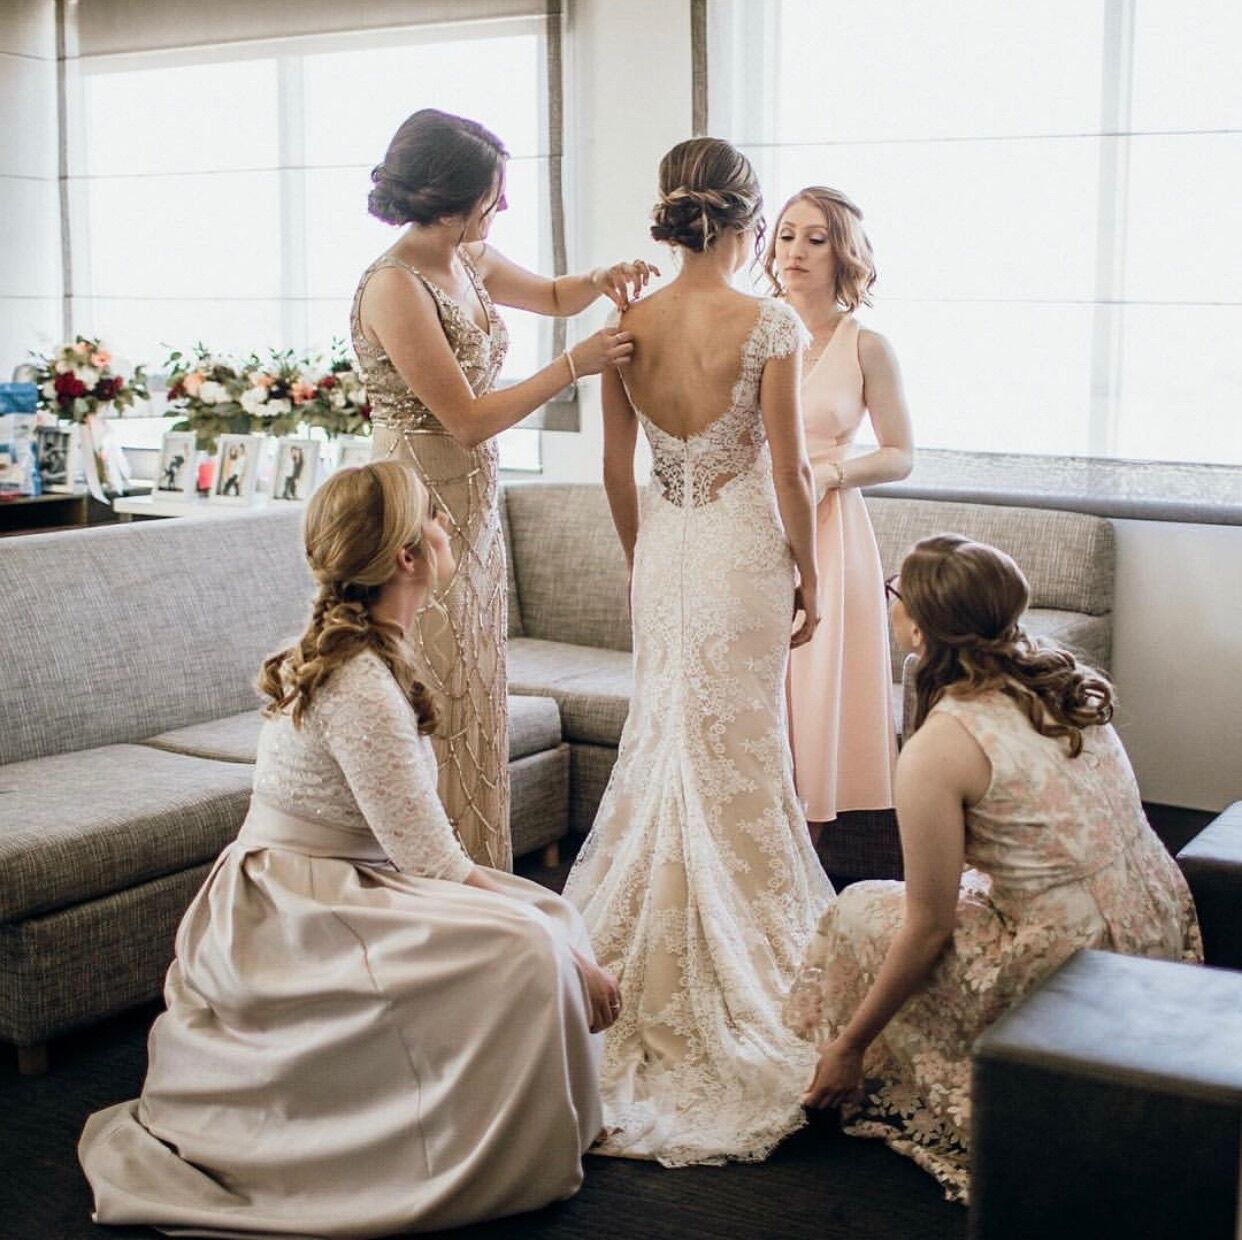 beauty salons in lincoln, ne - the knot